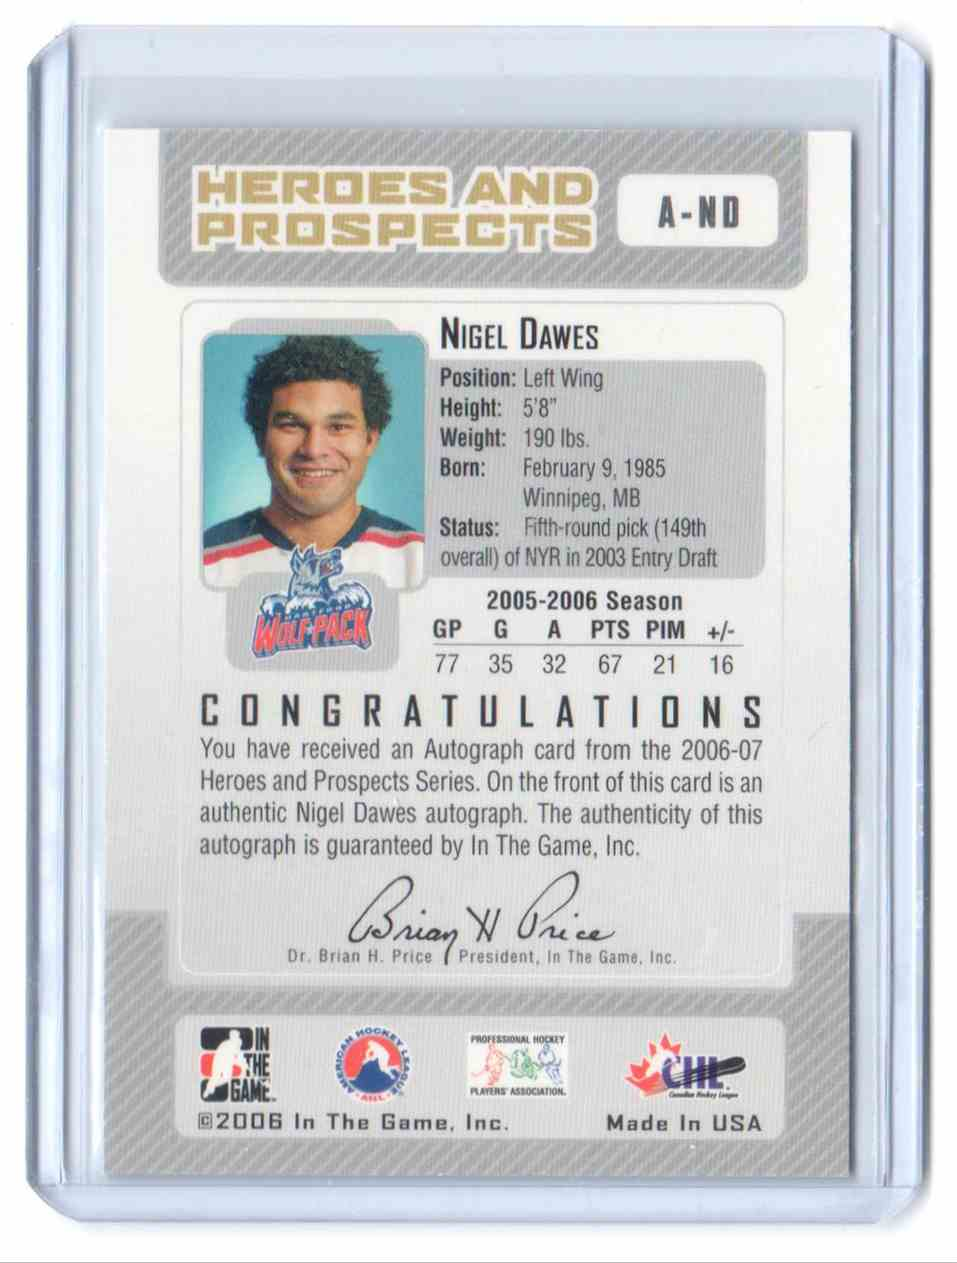 2006-07 In The Game Heroes And Prospects Autographs Nigel Dawes #A-ND card back image